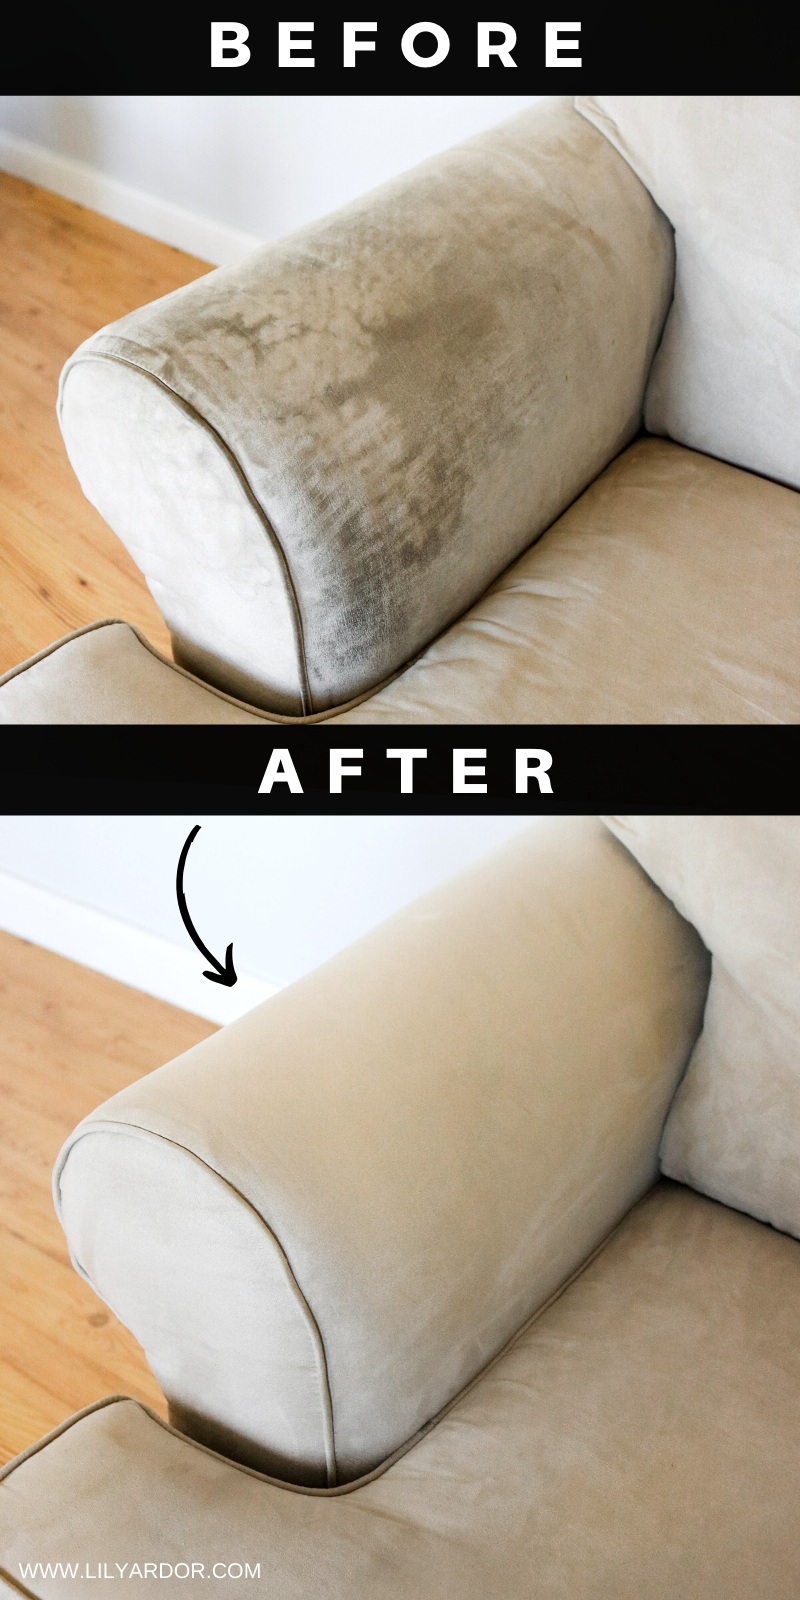 How To Wash Upholstery Microfiber Even The Deepest Stains In 2020 Cleaning Upholstery Cleaning Fabric Couch Fabric